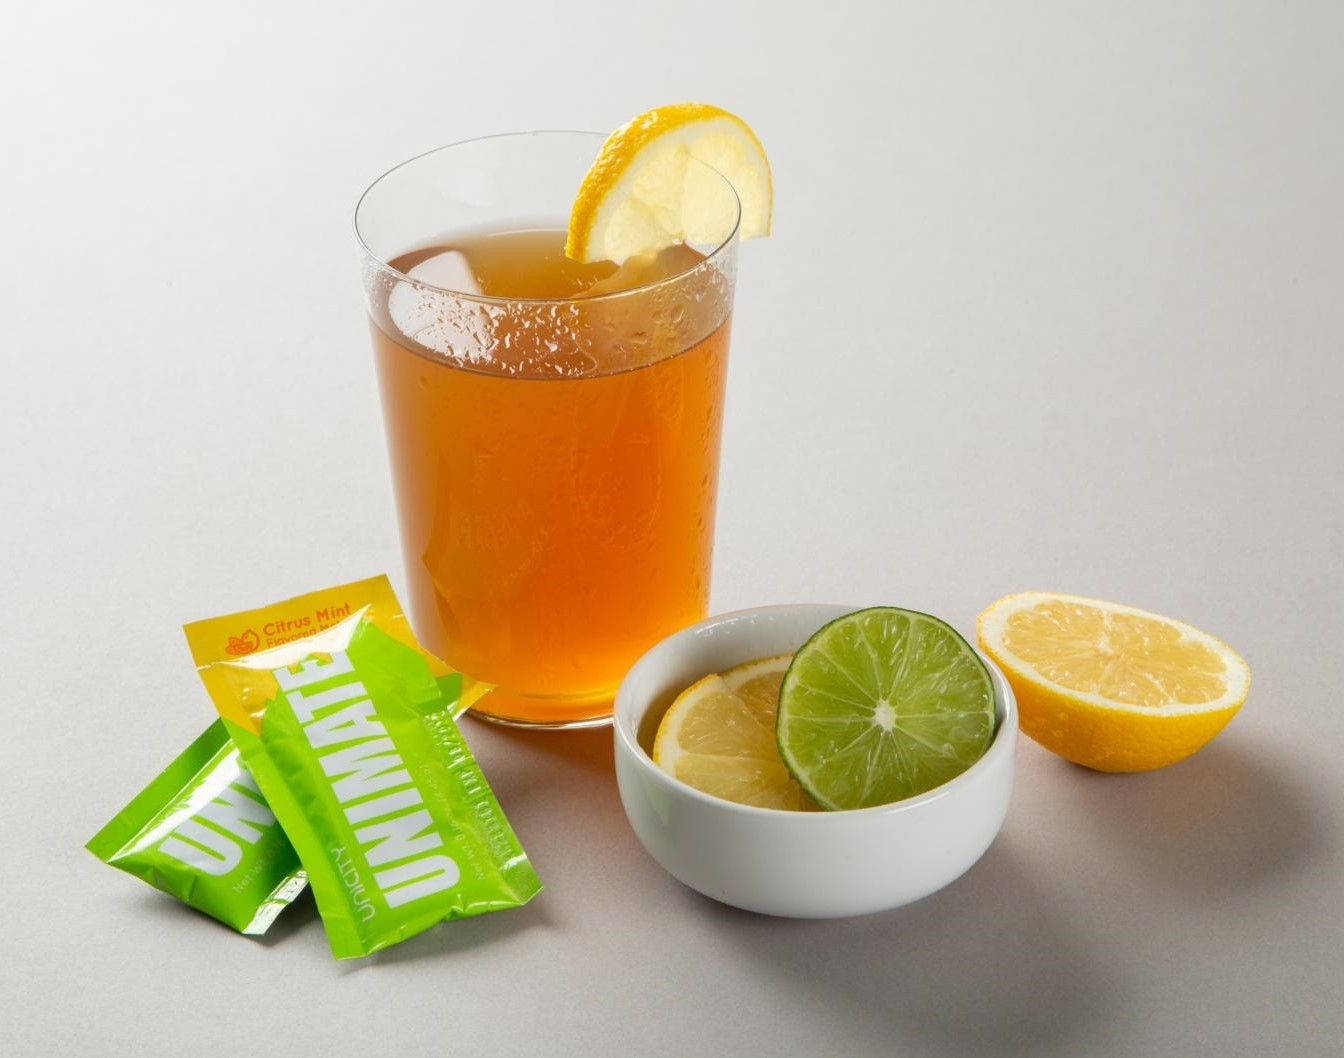 Unimate Yerba Mate Blend by Unicity-Promotes weight loss - $97.00